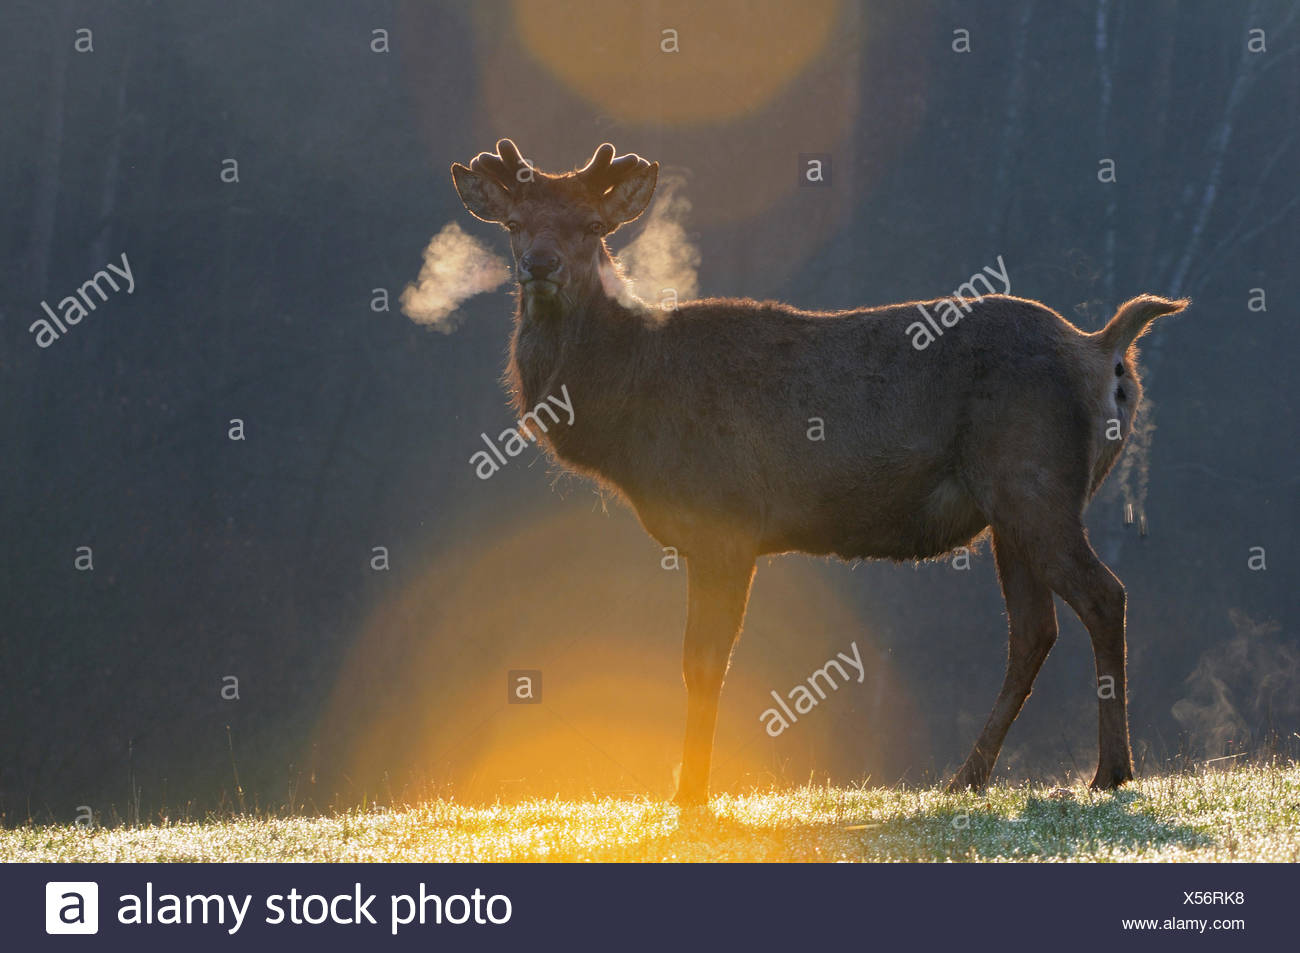 Red deer antlers antler Cervid Cervus elaphus deer stag stags hoofed animals European deer spring velvet animal animals Germ - Stock Image